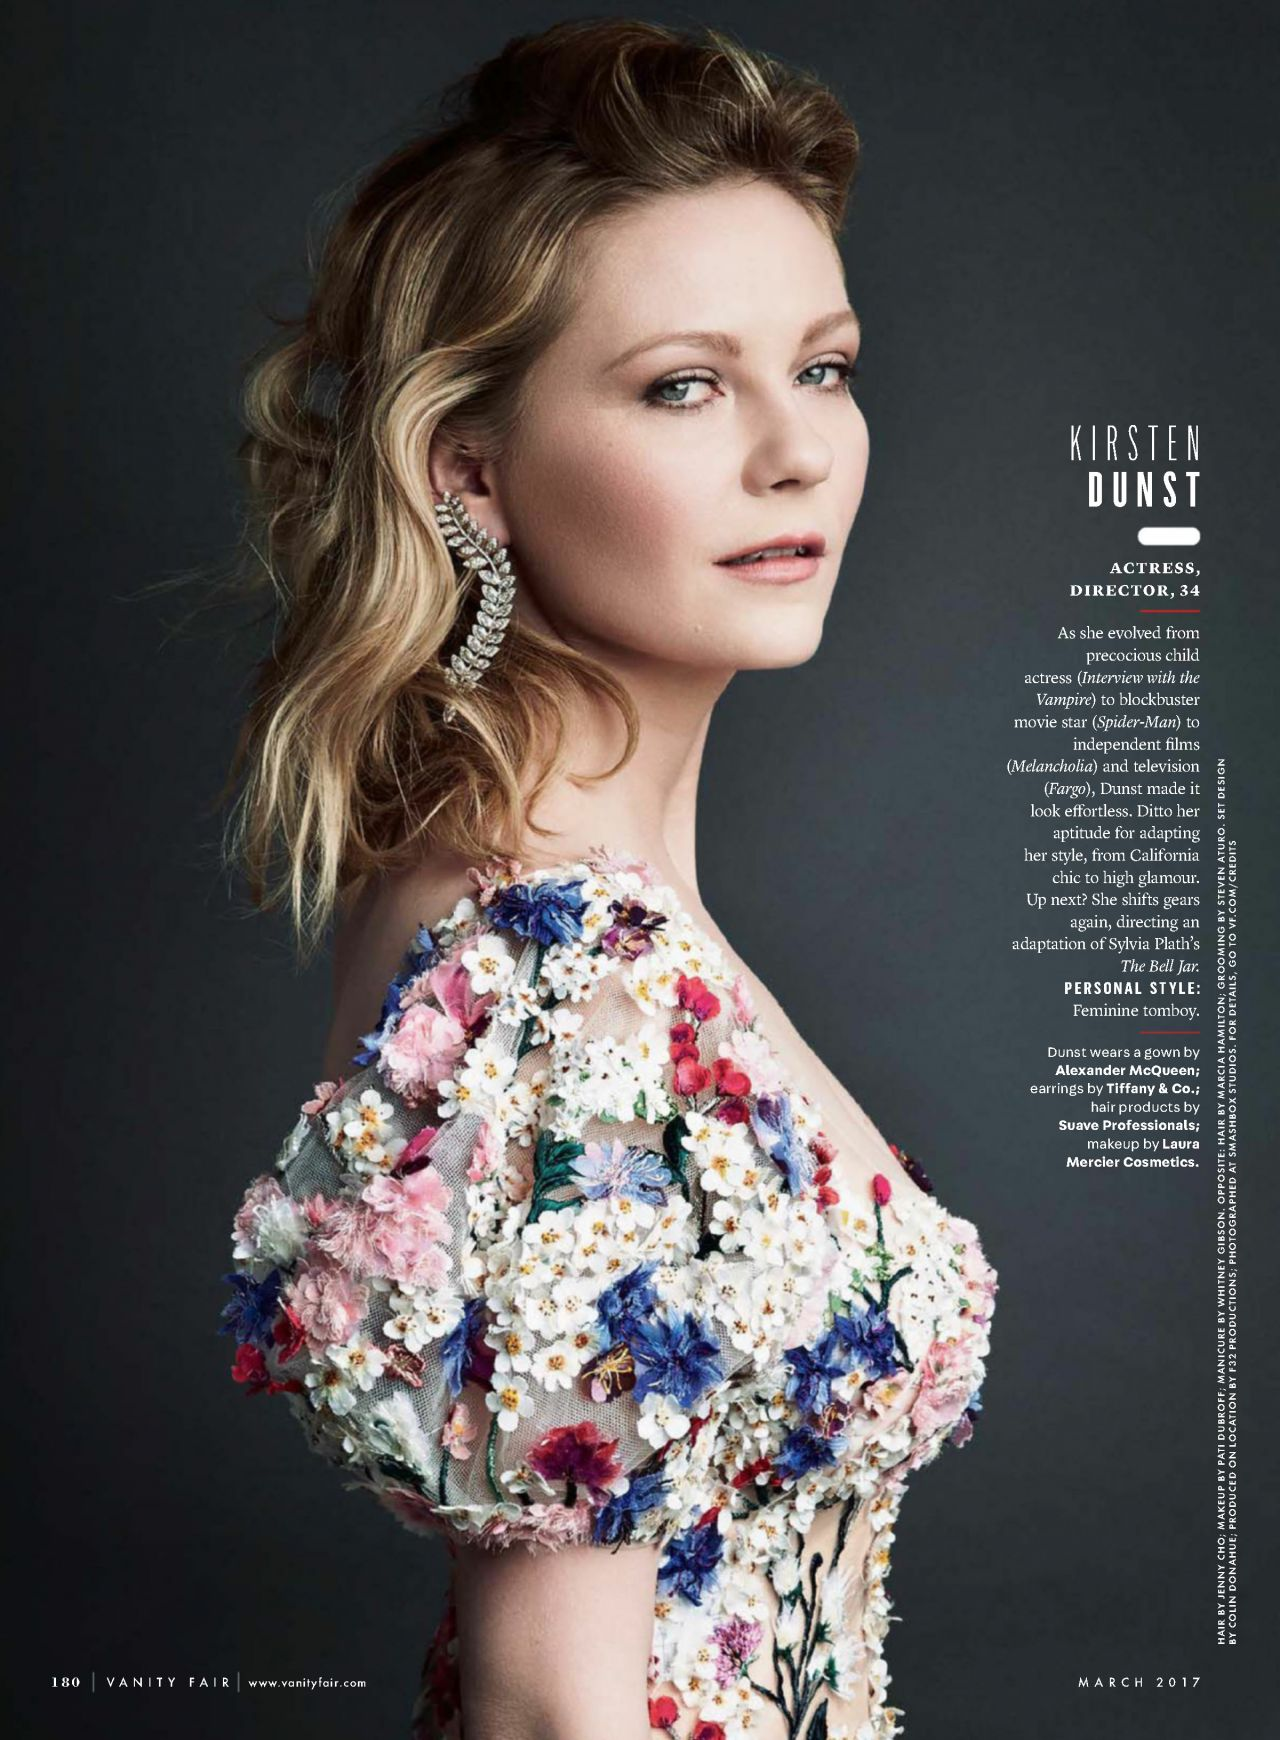 Kirsten Dunst - Vanity Fair USA April 2017